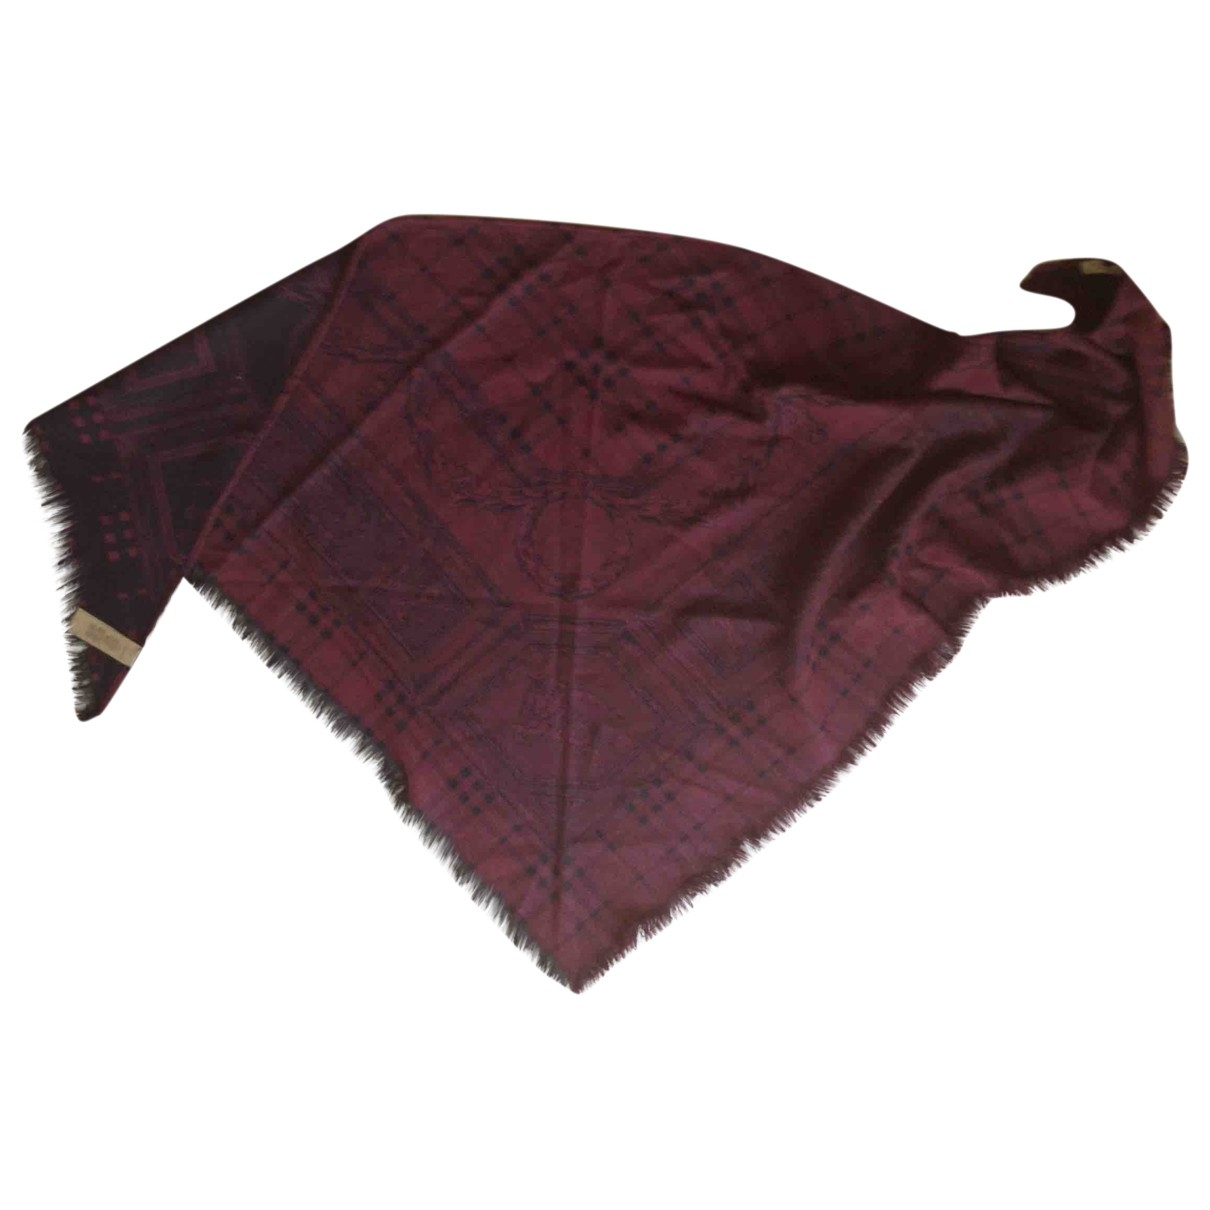 Burberry \N Burgundy Cashmere scarf for Women \N